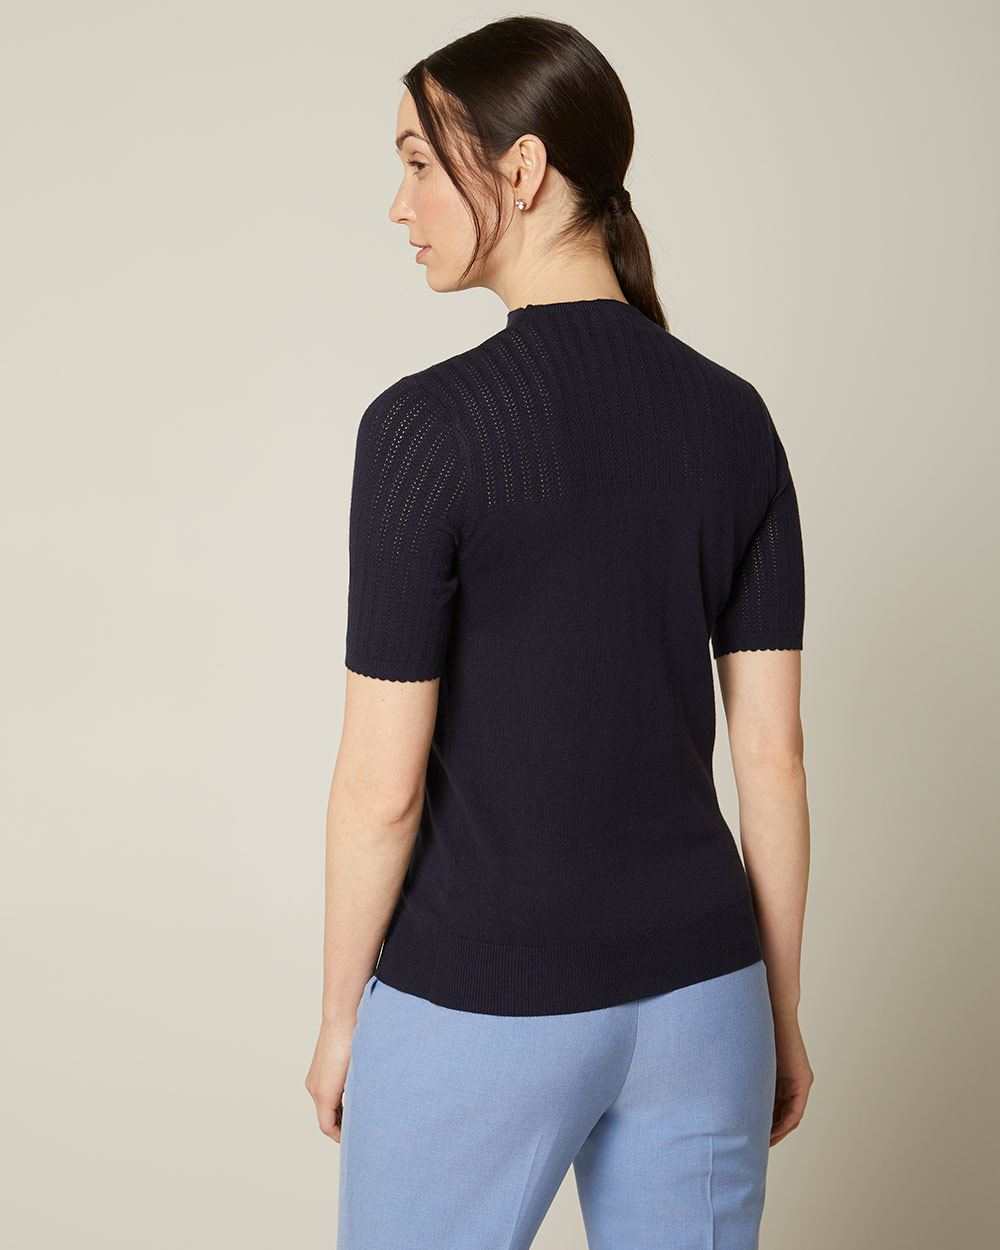 Cashmere-like short sleeve sweater with pointelle stitch